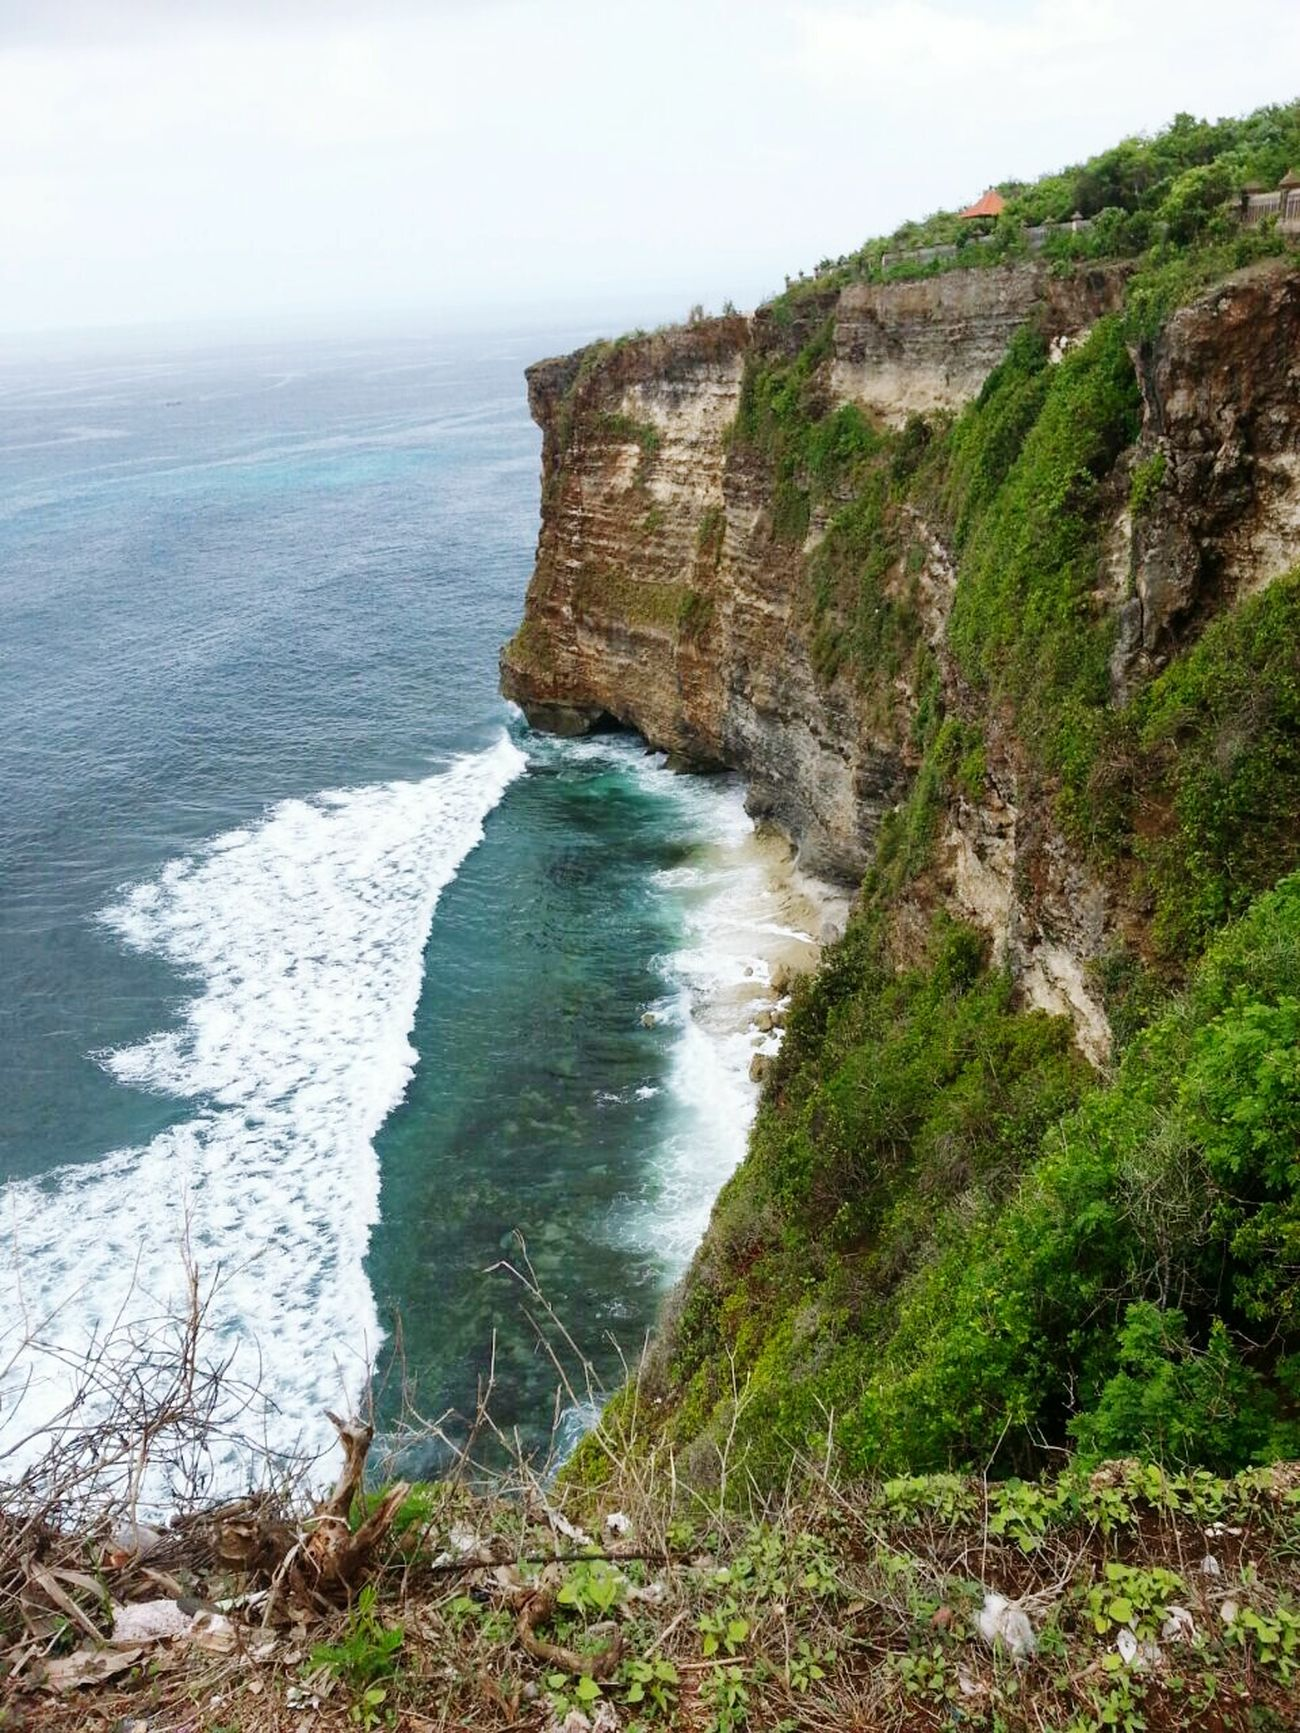 While in Bali... Ocean On A Cliff Beautiful Bali Today's Hot Look Check This Out Hi!